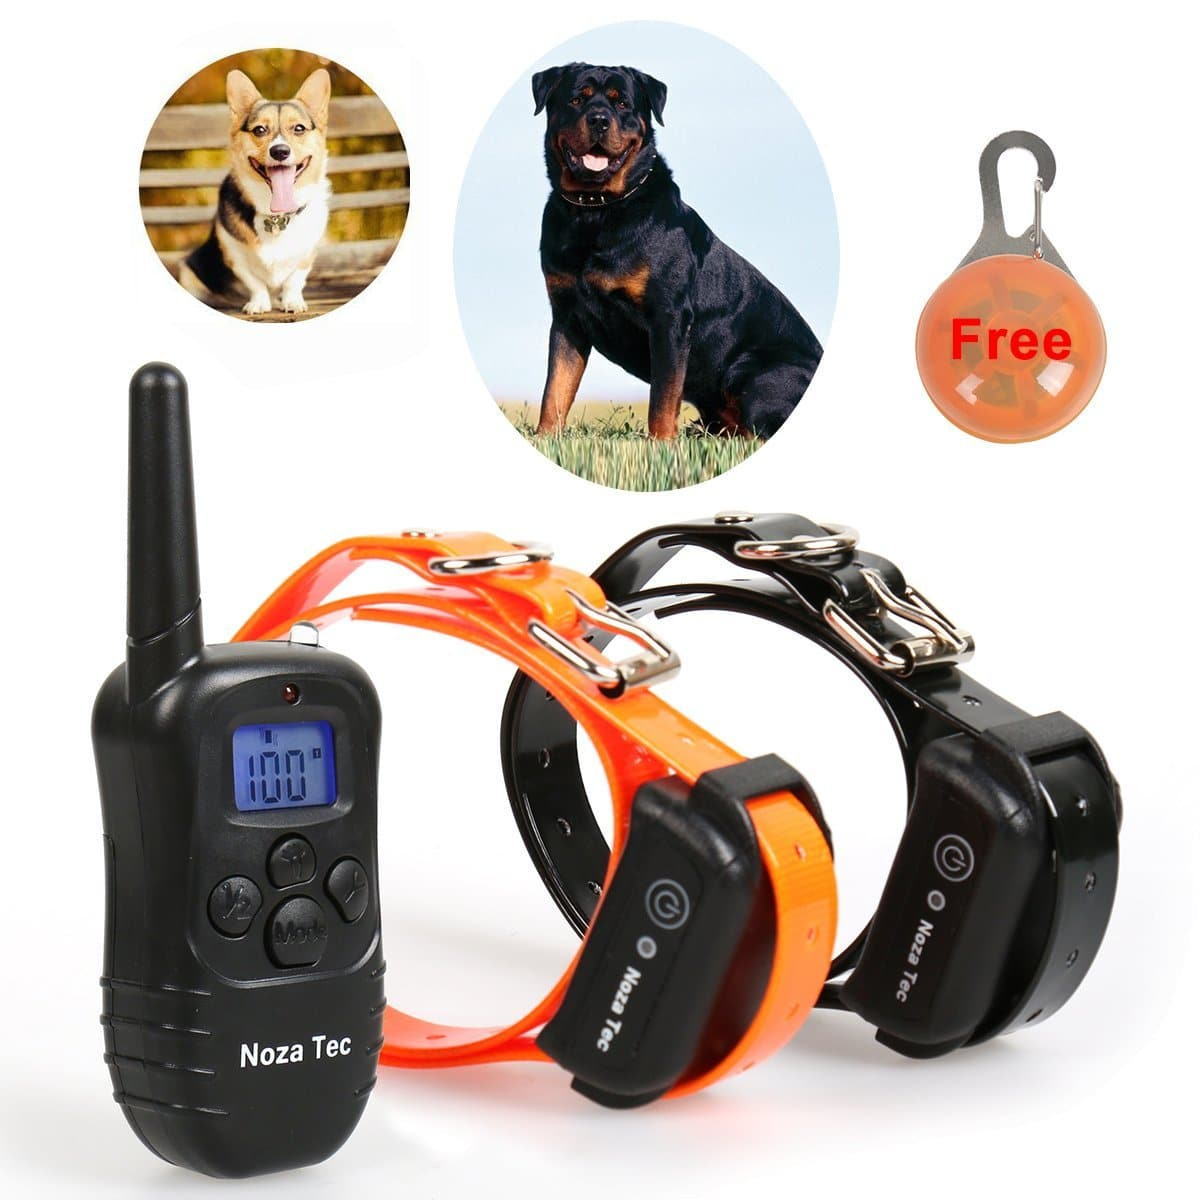 Noza Tec 330yd Remote Dog Training collar Waterproof shock E-collar for 2 Dogs with Beep, Vibration and Shock Electronic Electric Collar